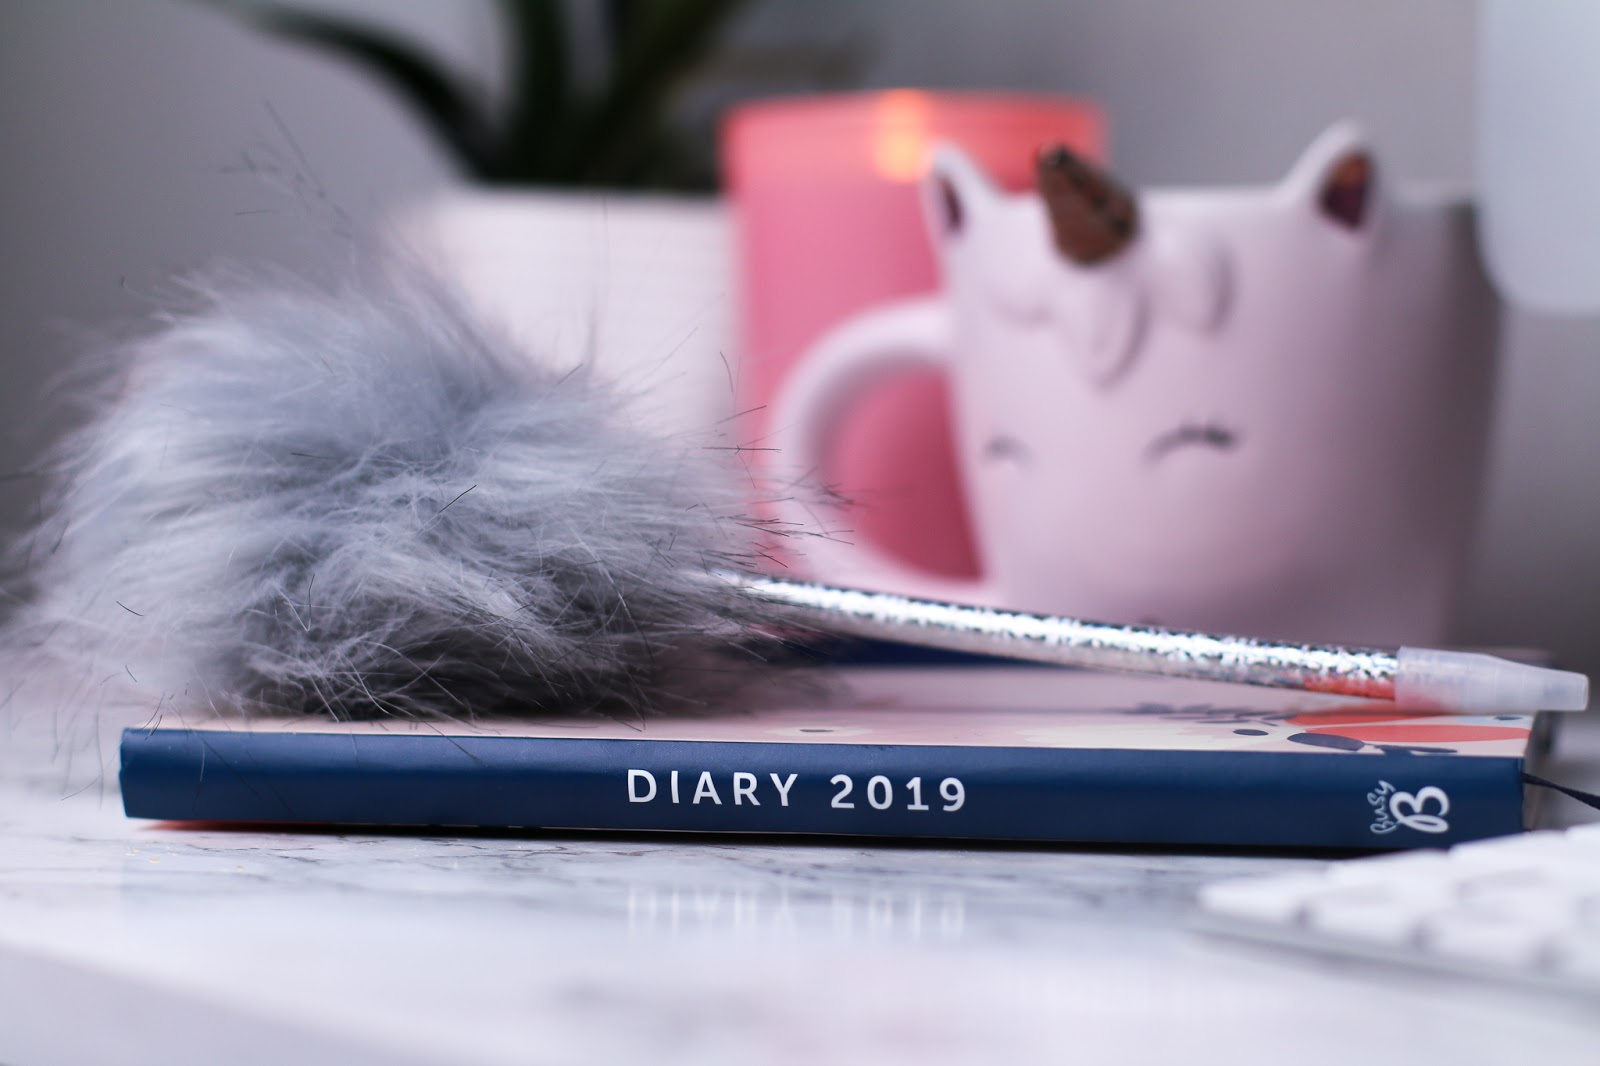 a busyb 2019 diary on a marble counter top with a grey fluffy pen on top of it. There is a white unicorn light in the background and a pink candle.